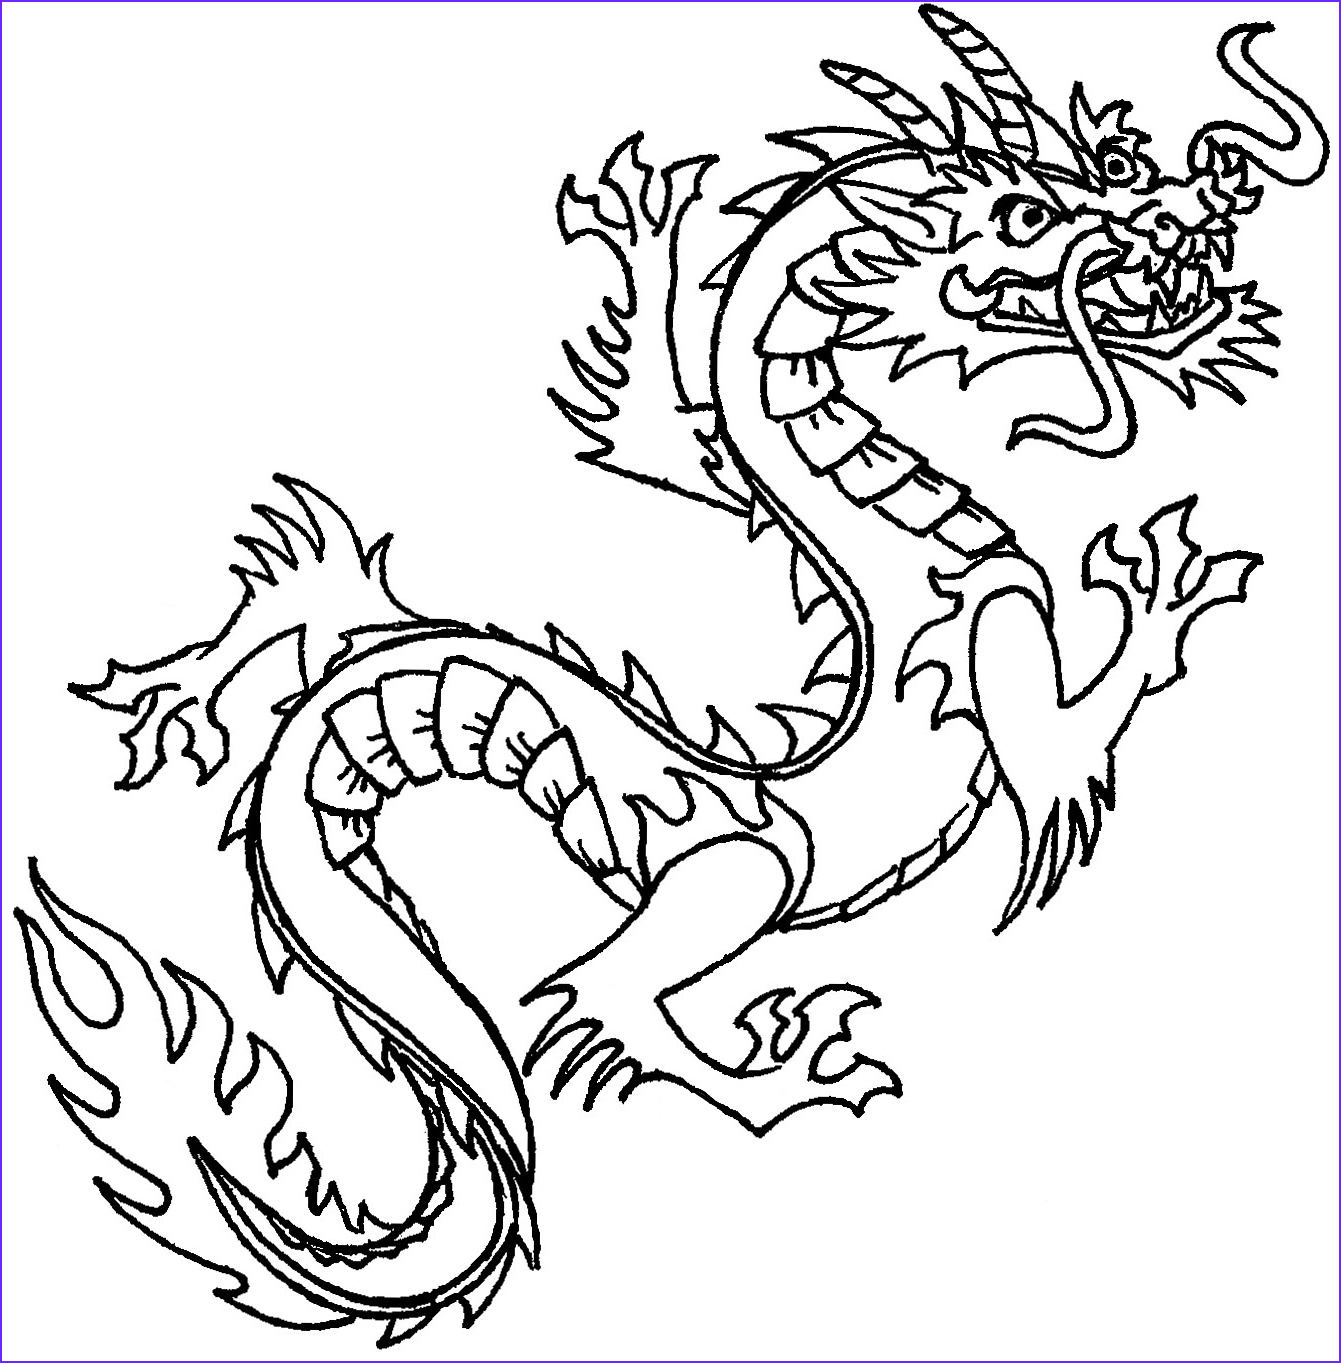 Dragon Coloring Page to Print Best Of Images Free Printable Chinese Dragon Coloring Pages for Kids